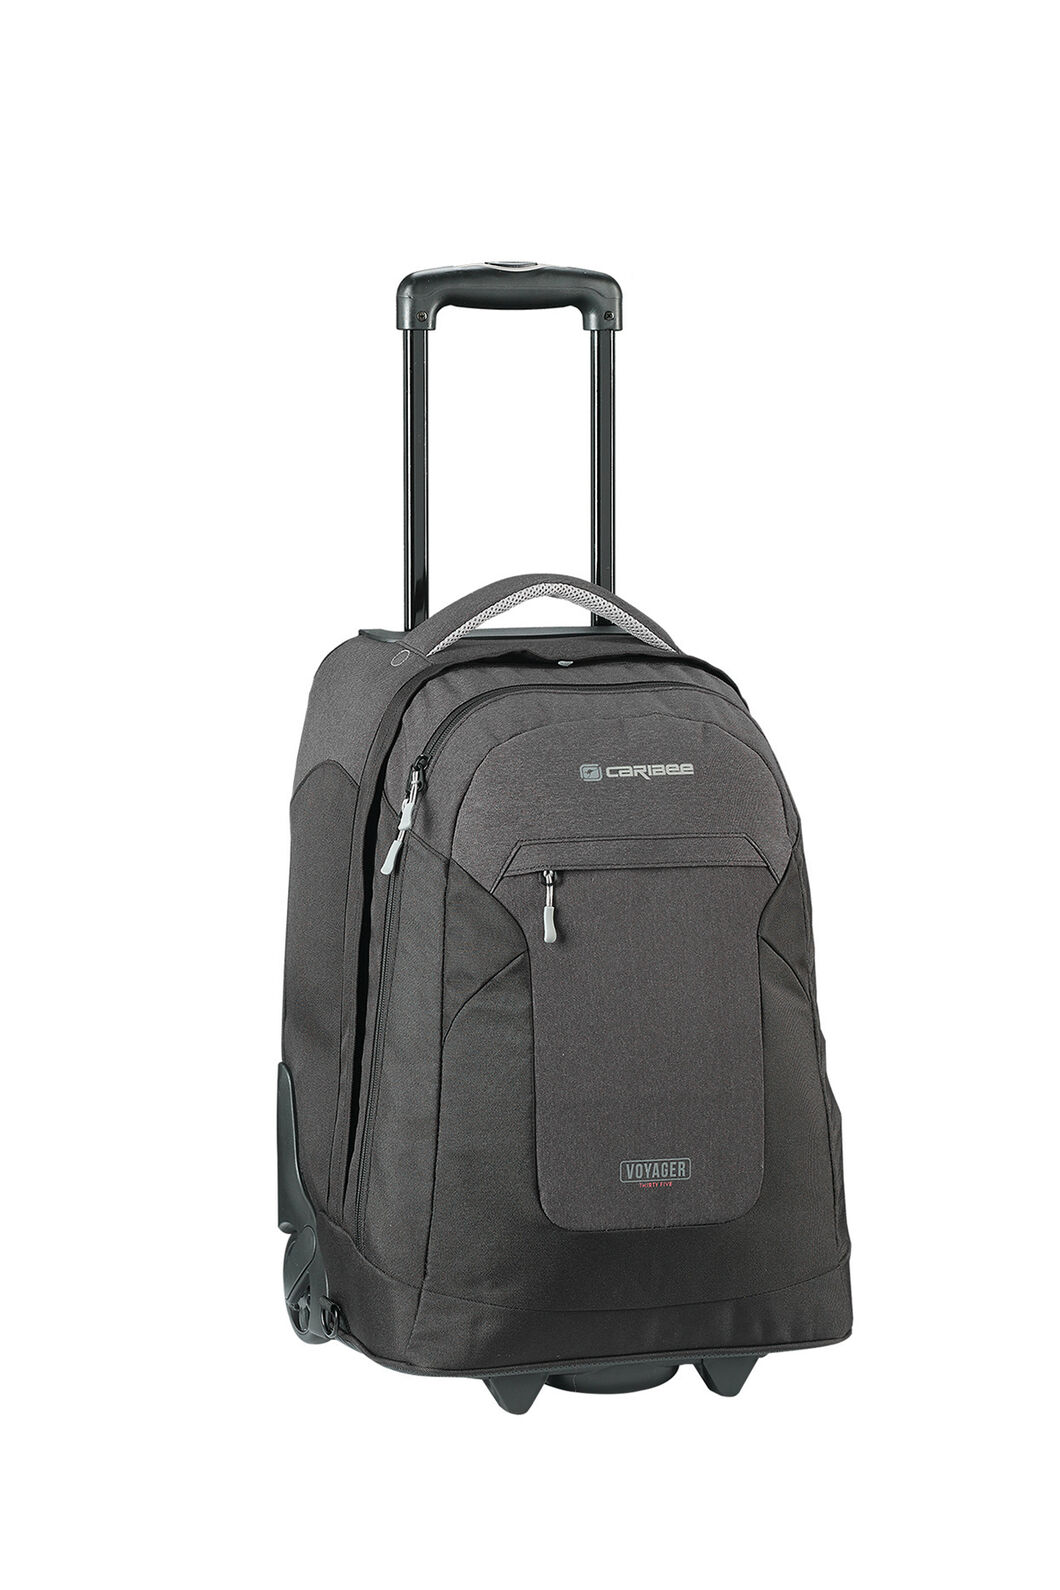 Caribee Voyager 35L Wheeled Luggage, None, hi-res